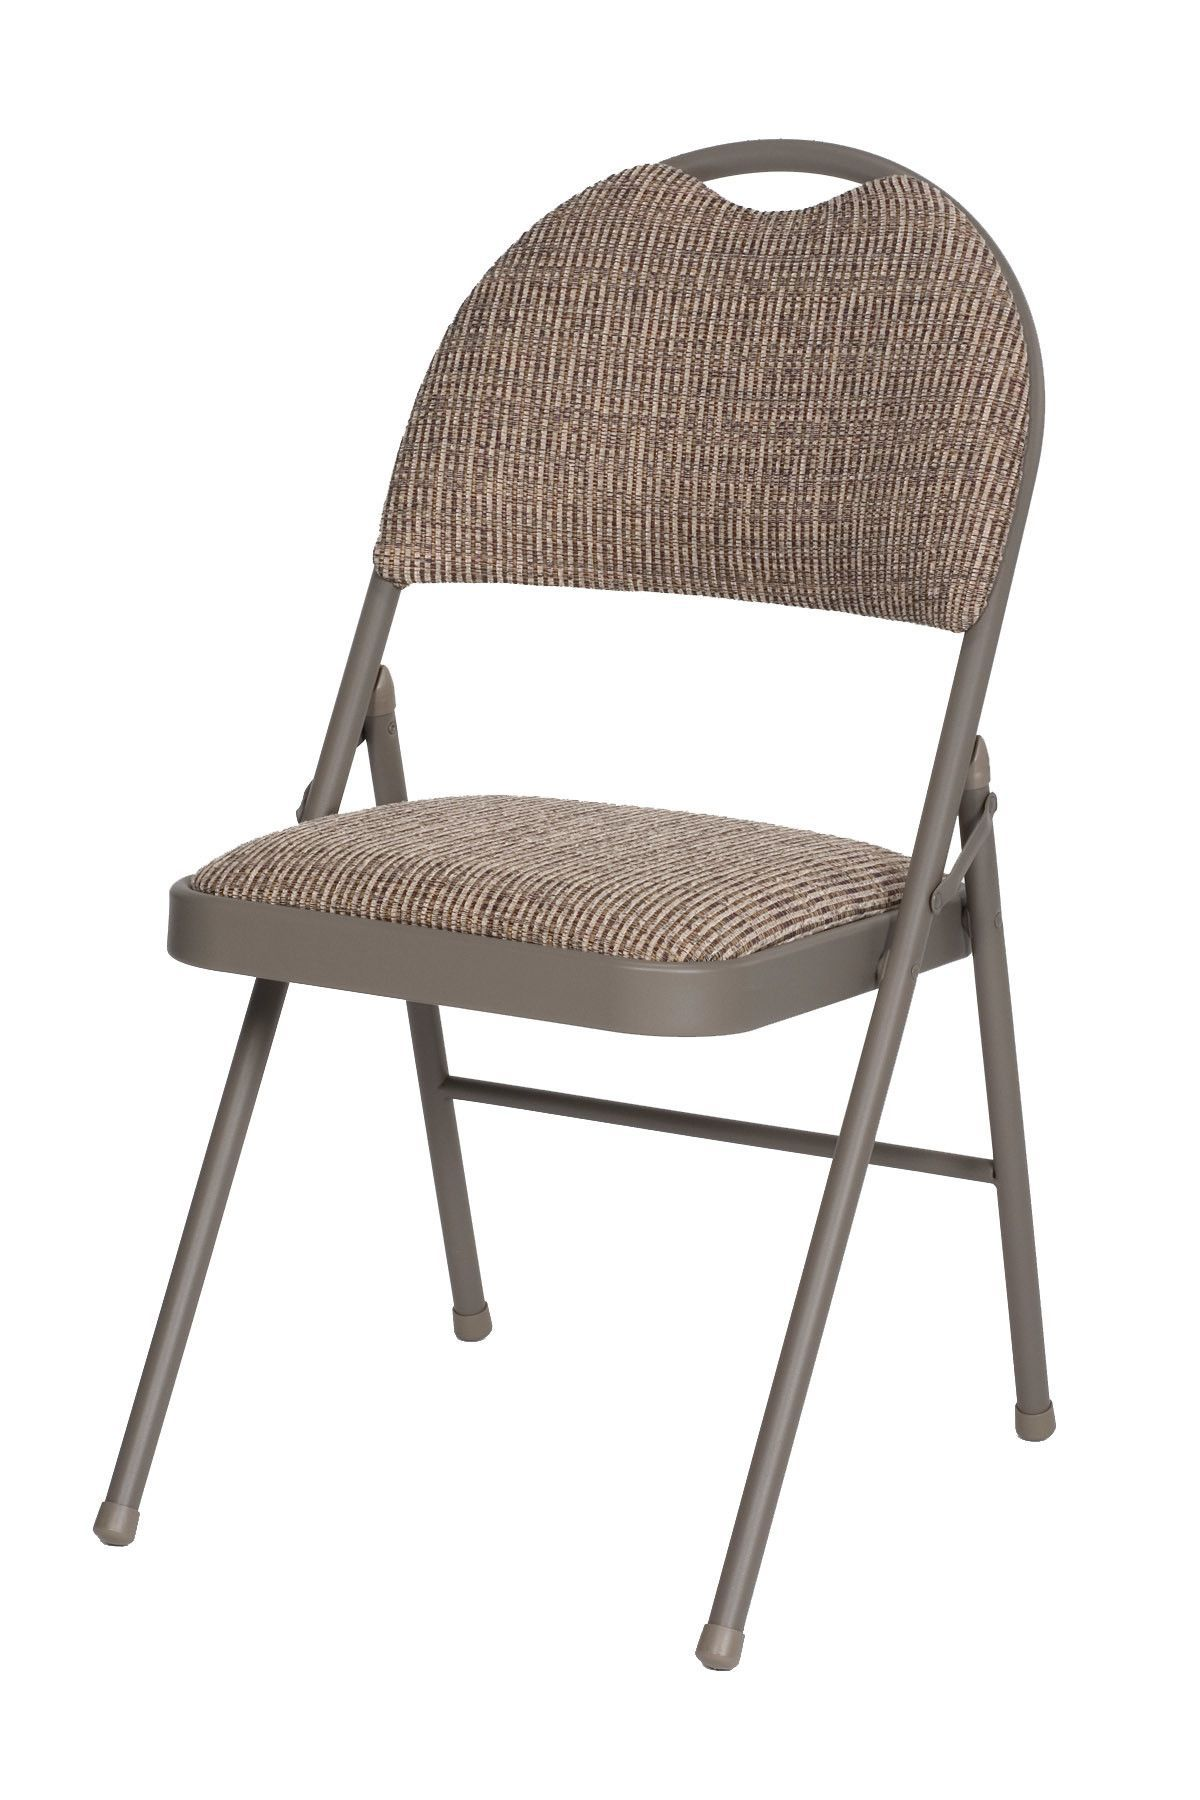 Double fabric padded folding chair folding chair padded